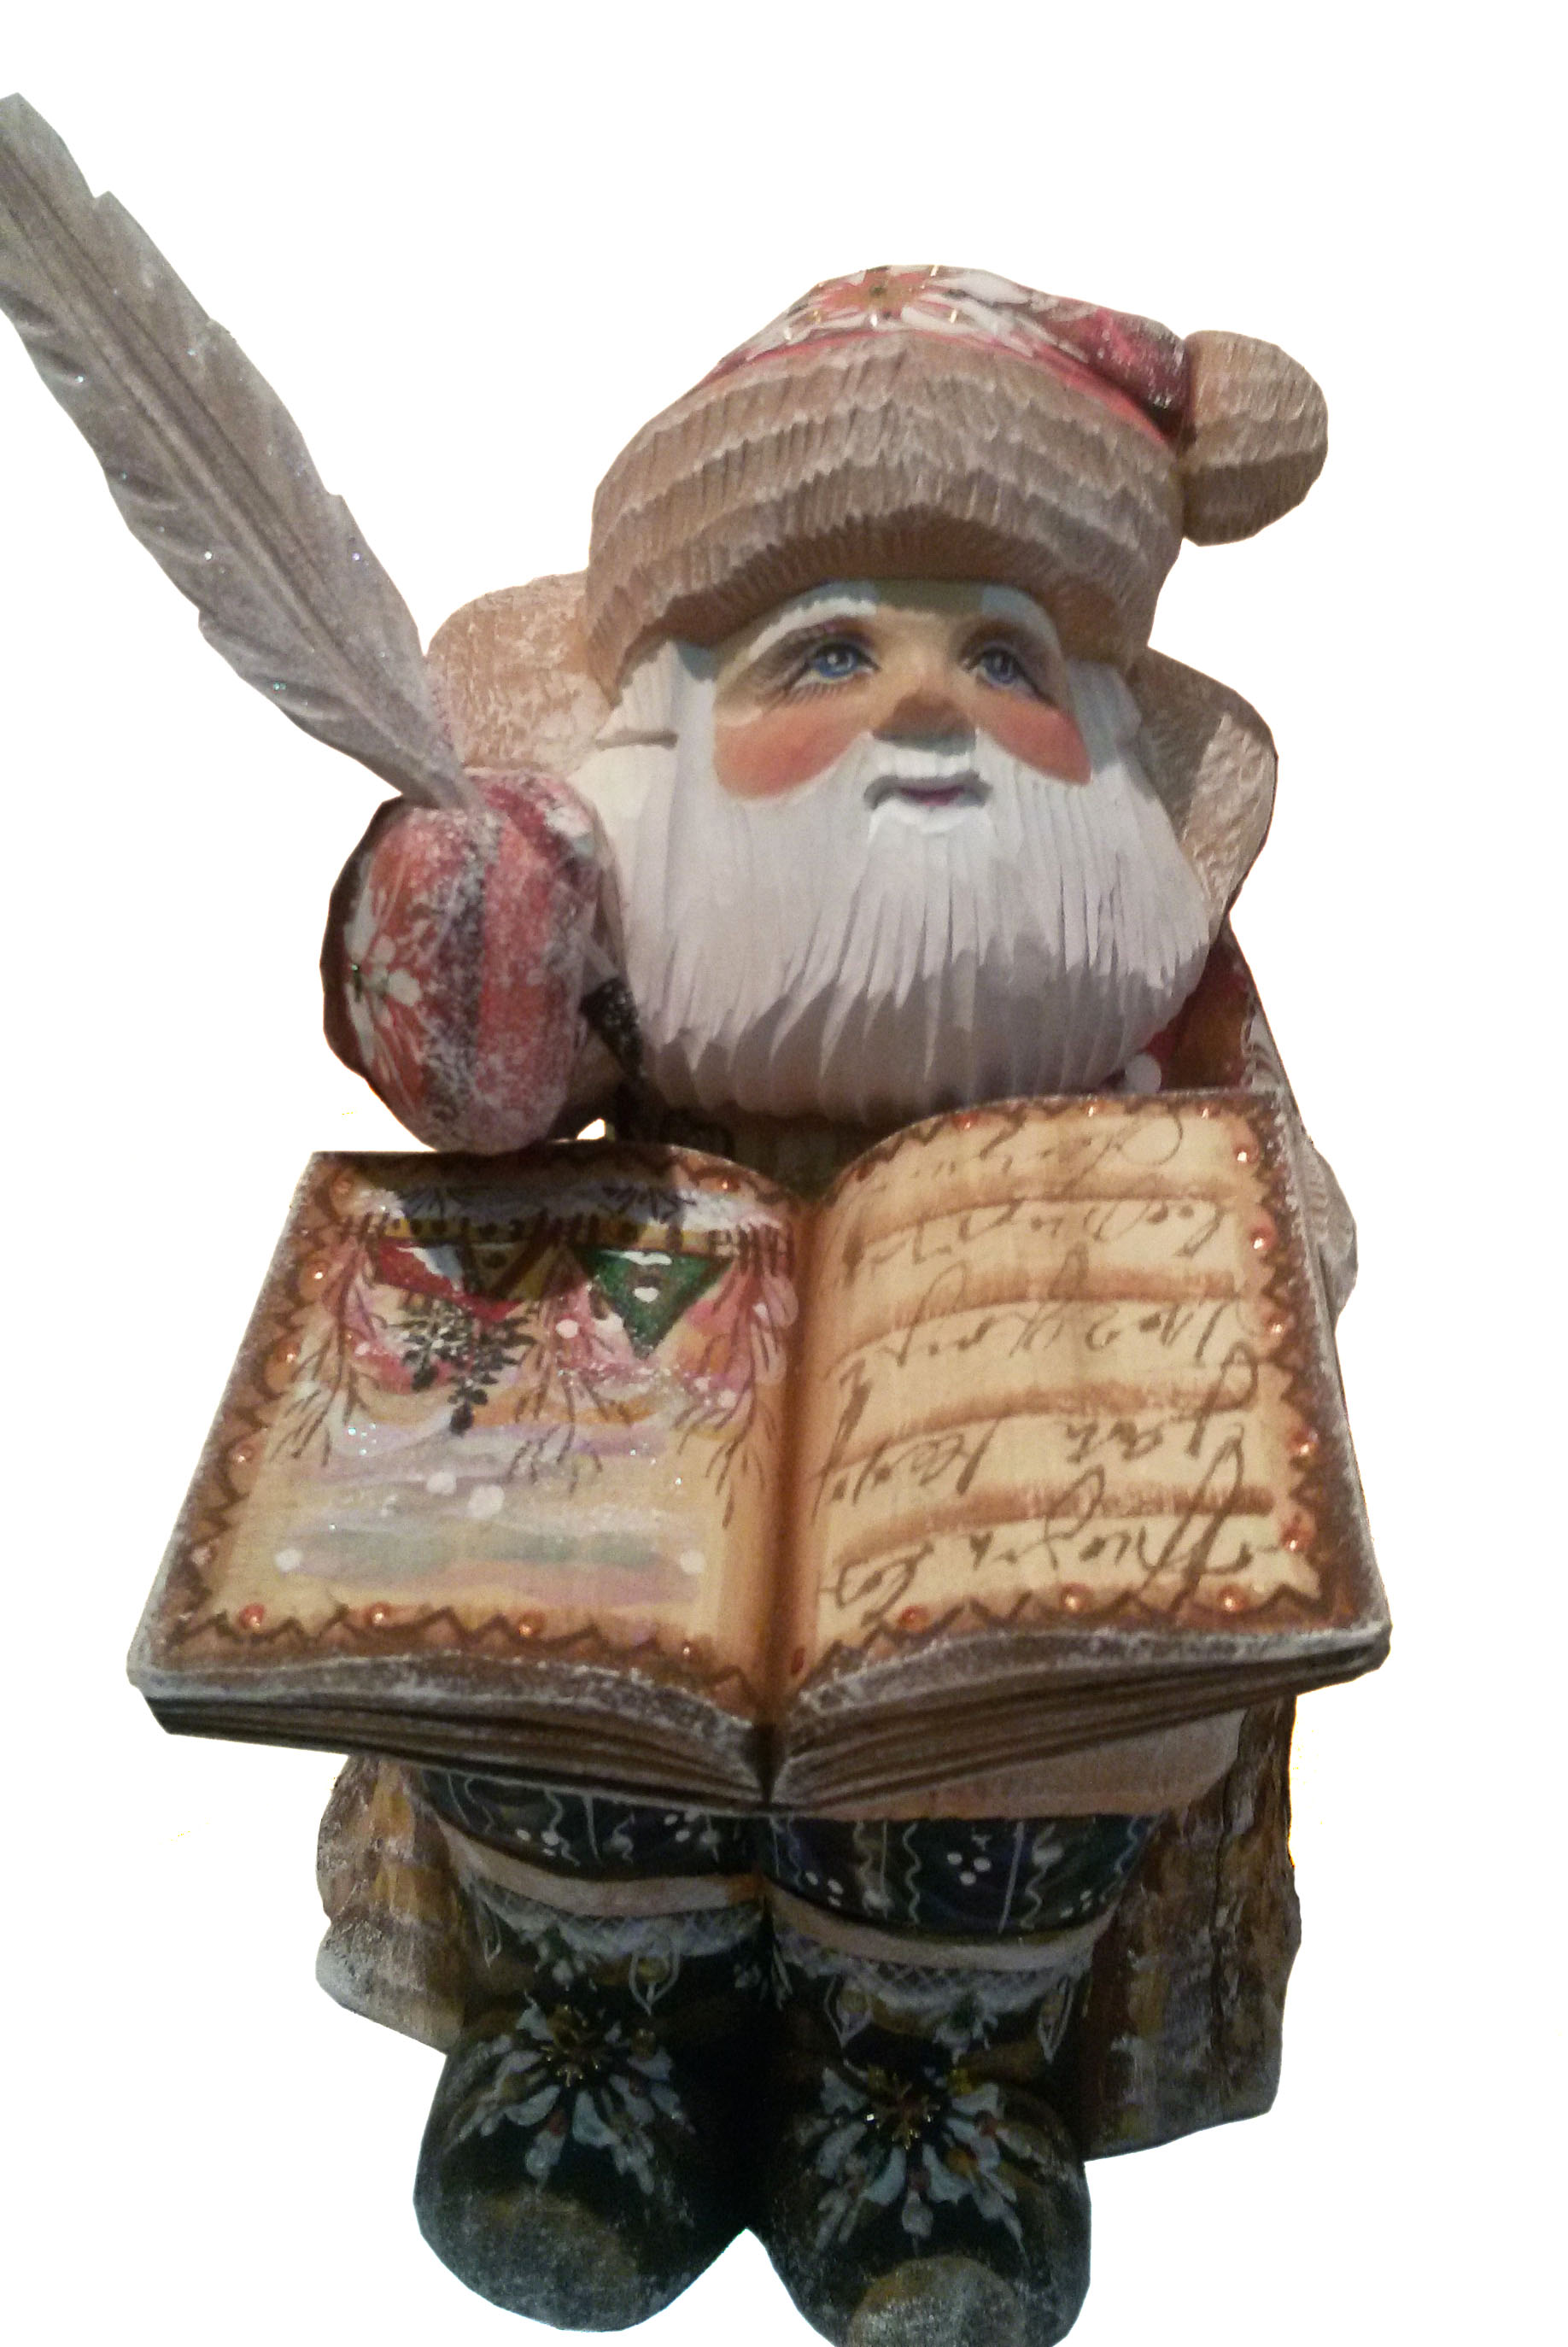 CK_ish28001 Traditionally hand carved of wood from linden tree and hand painted Santa Claus (21 cm)